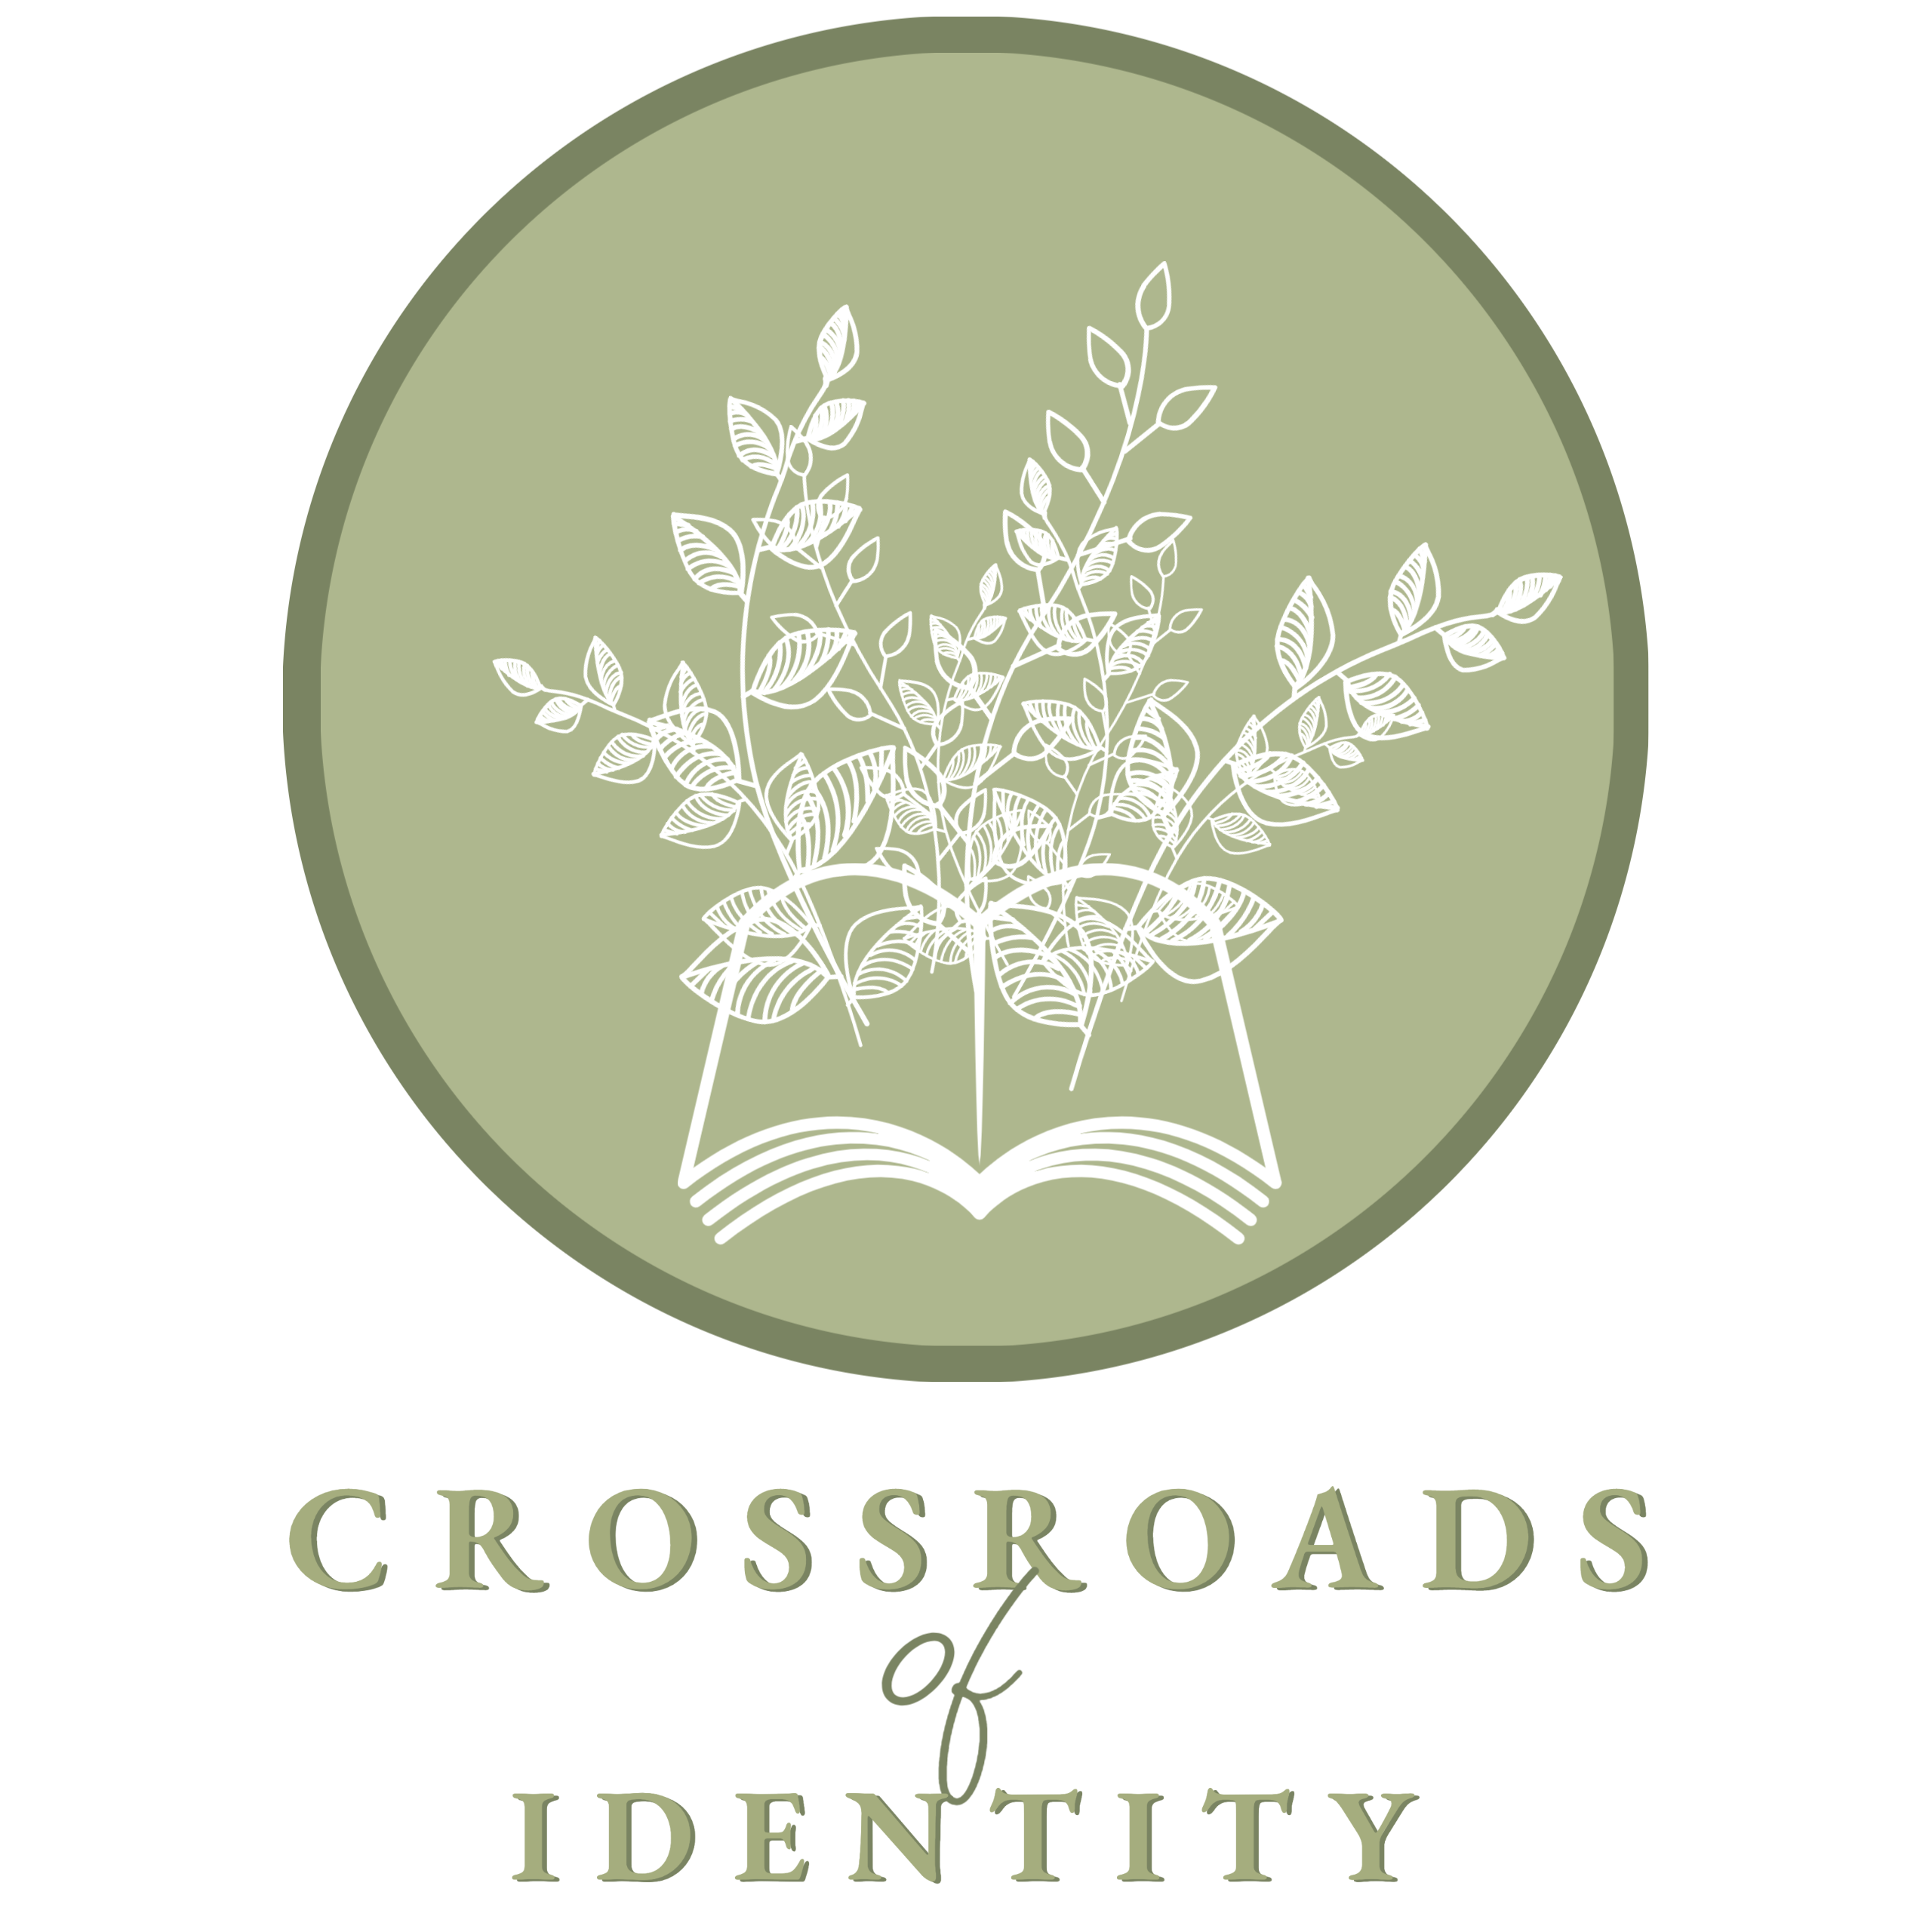 Crossroads of Identity